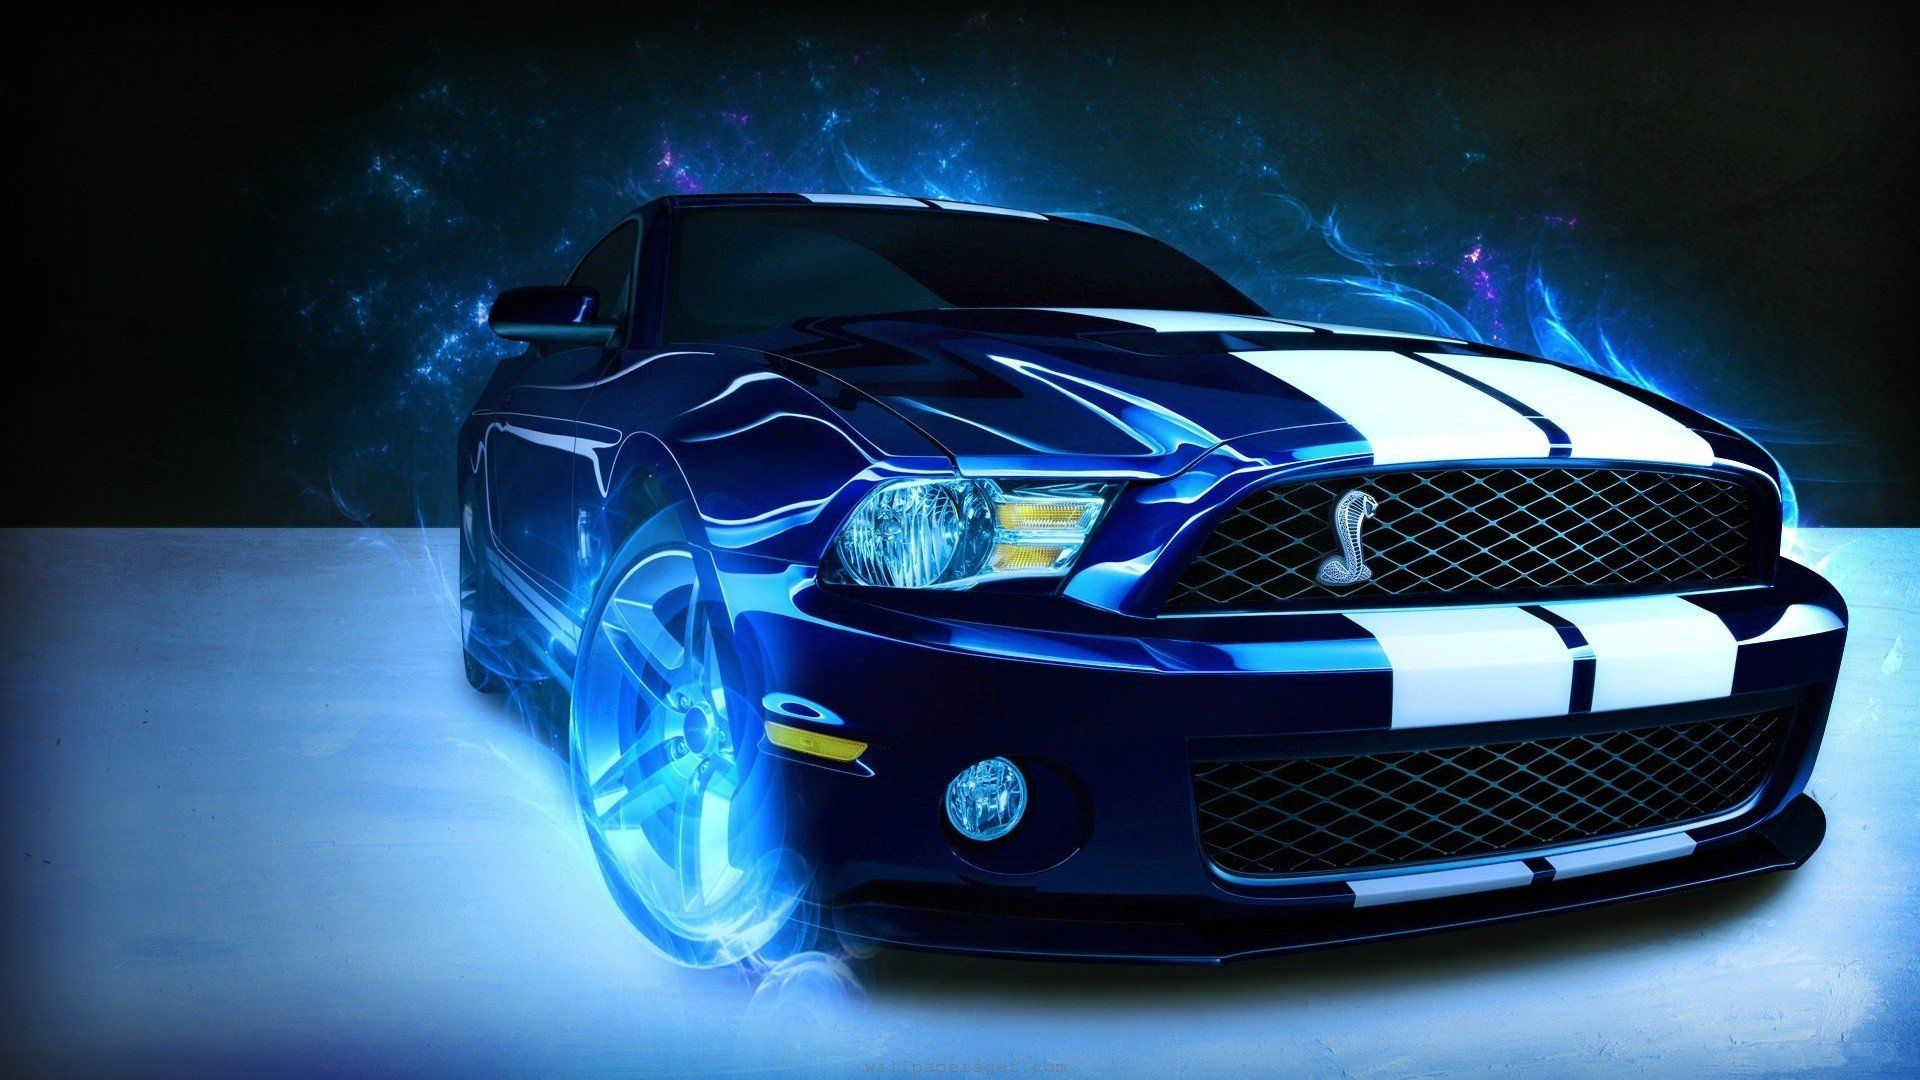 2014 Ford Mustang Gt Wallpaper Ford Mustang Cars Shelby Gt500